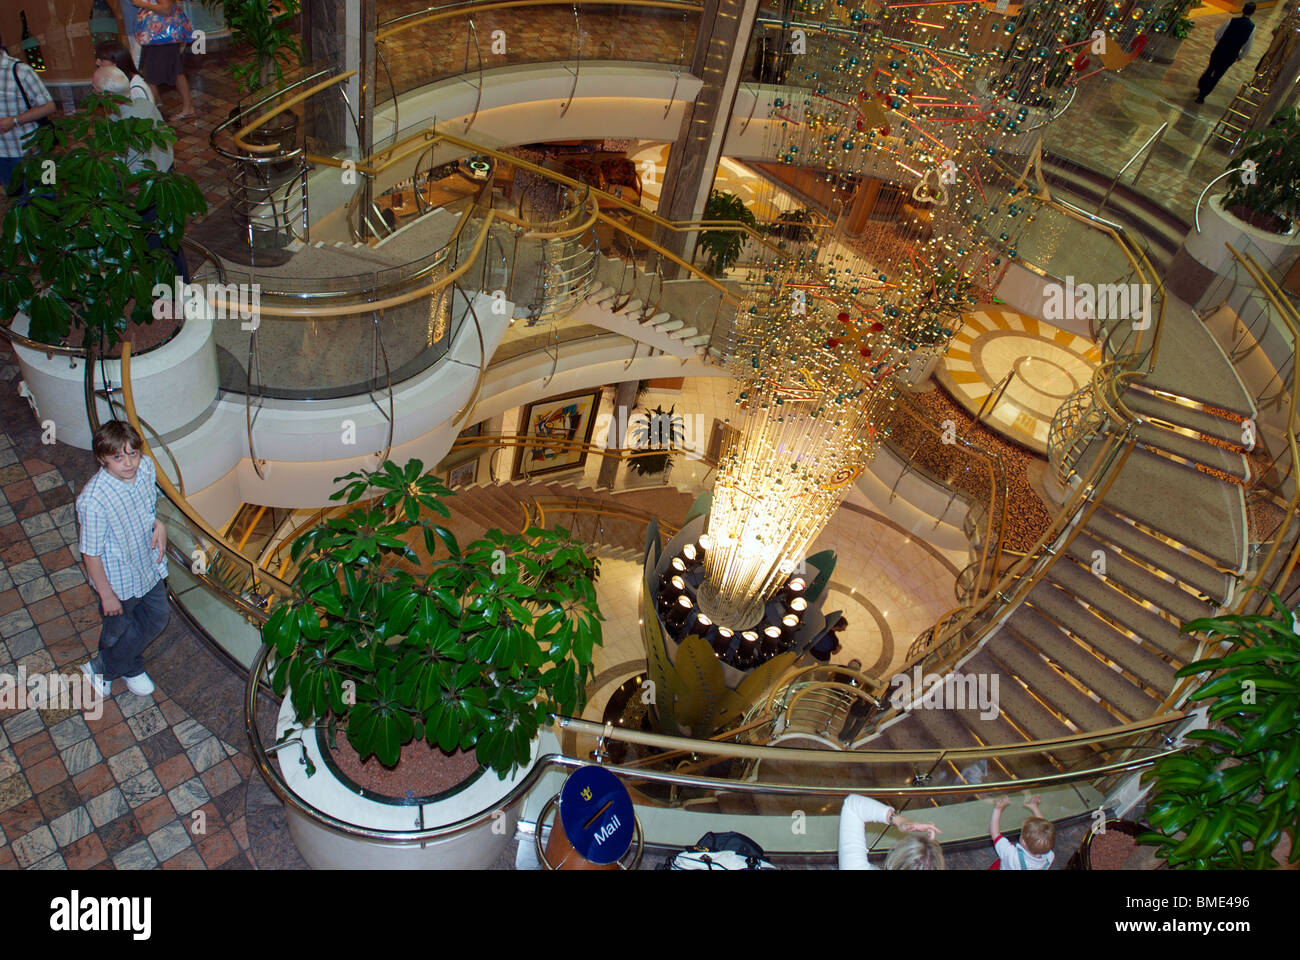 The Royal Caribbean cruise liner the Navigator of the Seas showing the massive main stairway aboard. - Stock Image